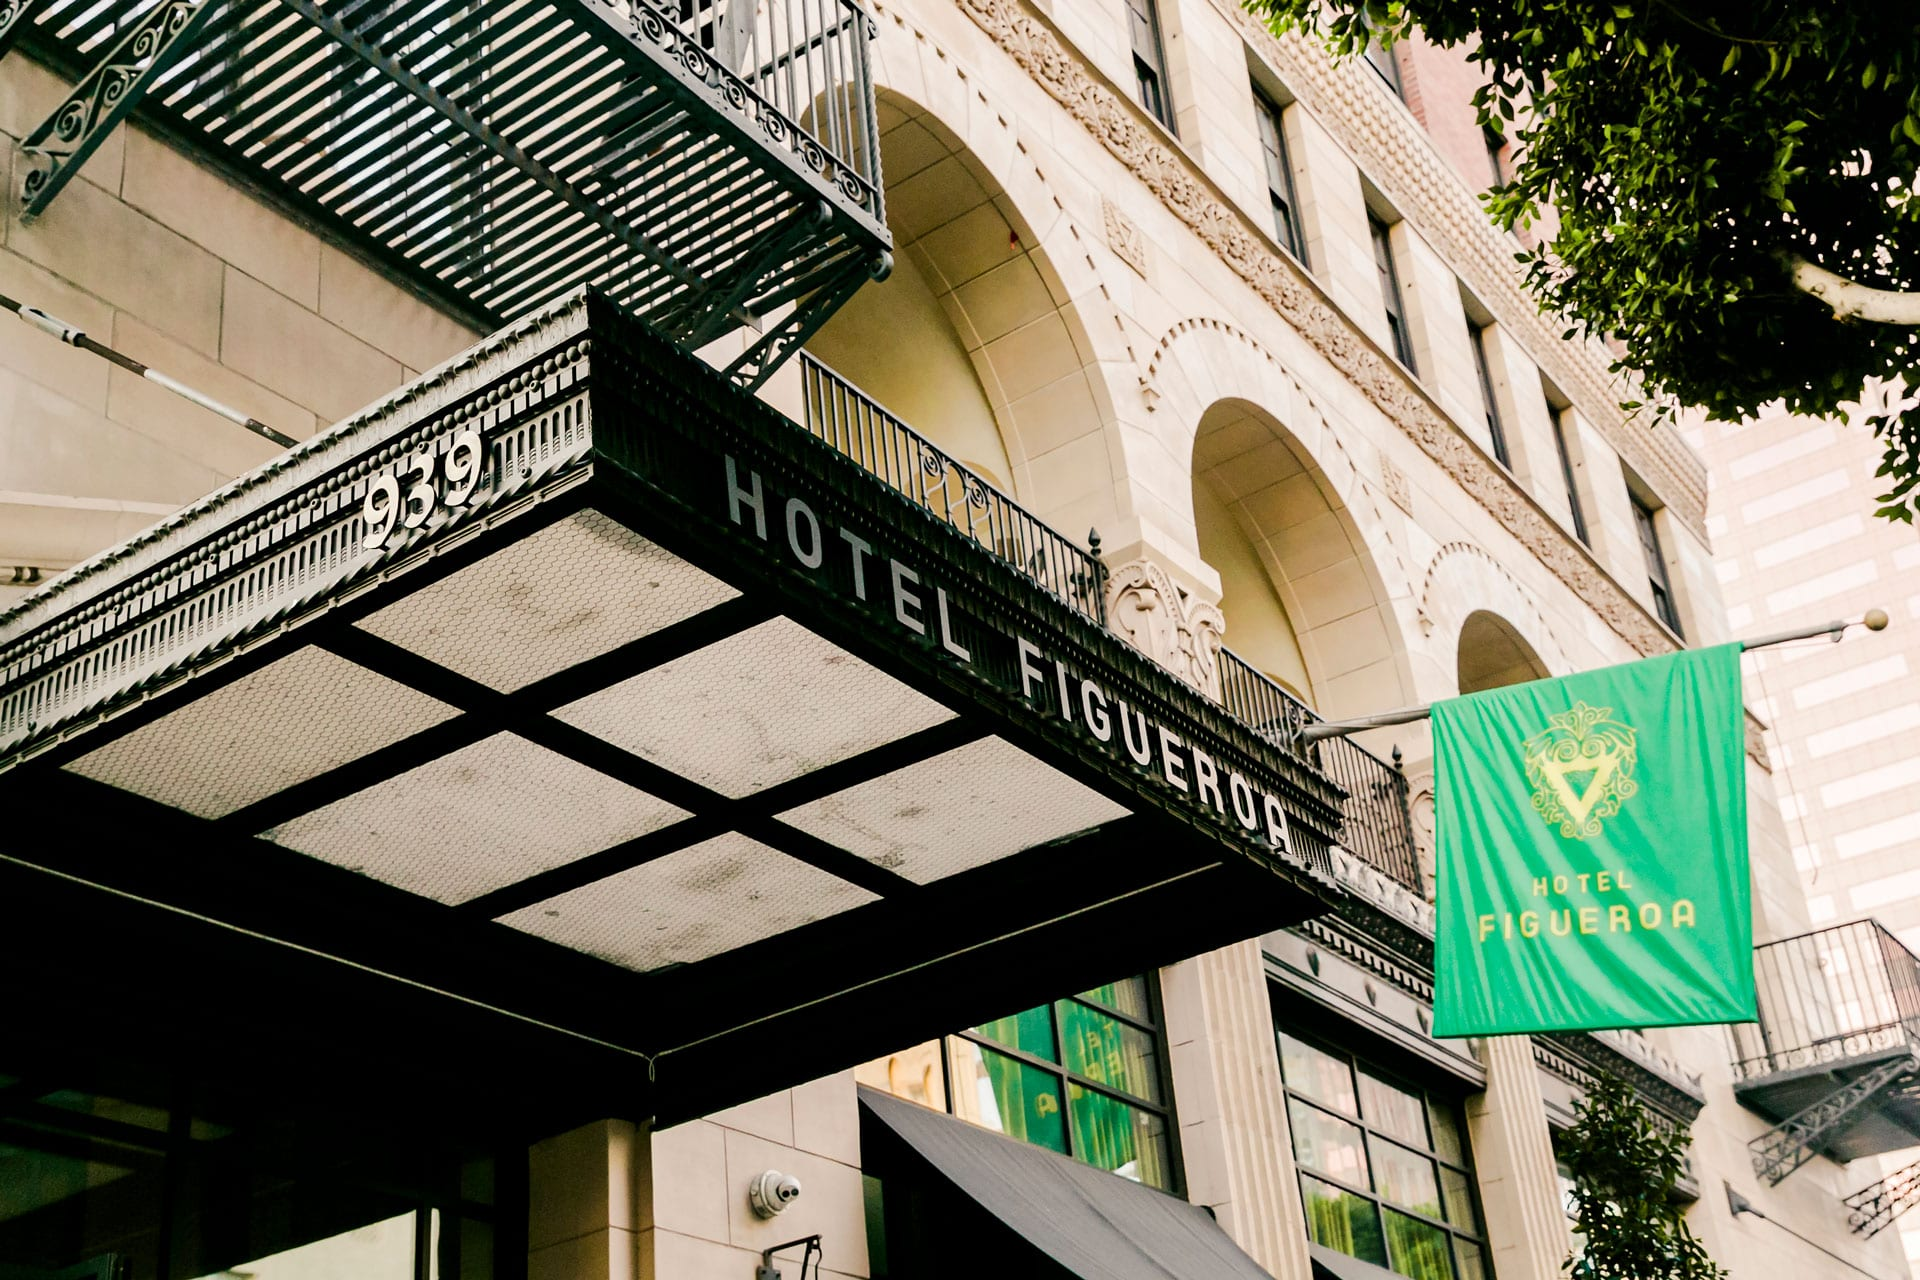 awning at entrance of hotel figueroa with green flag